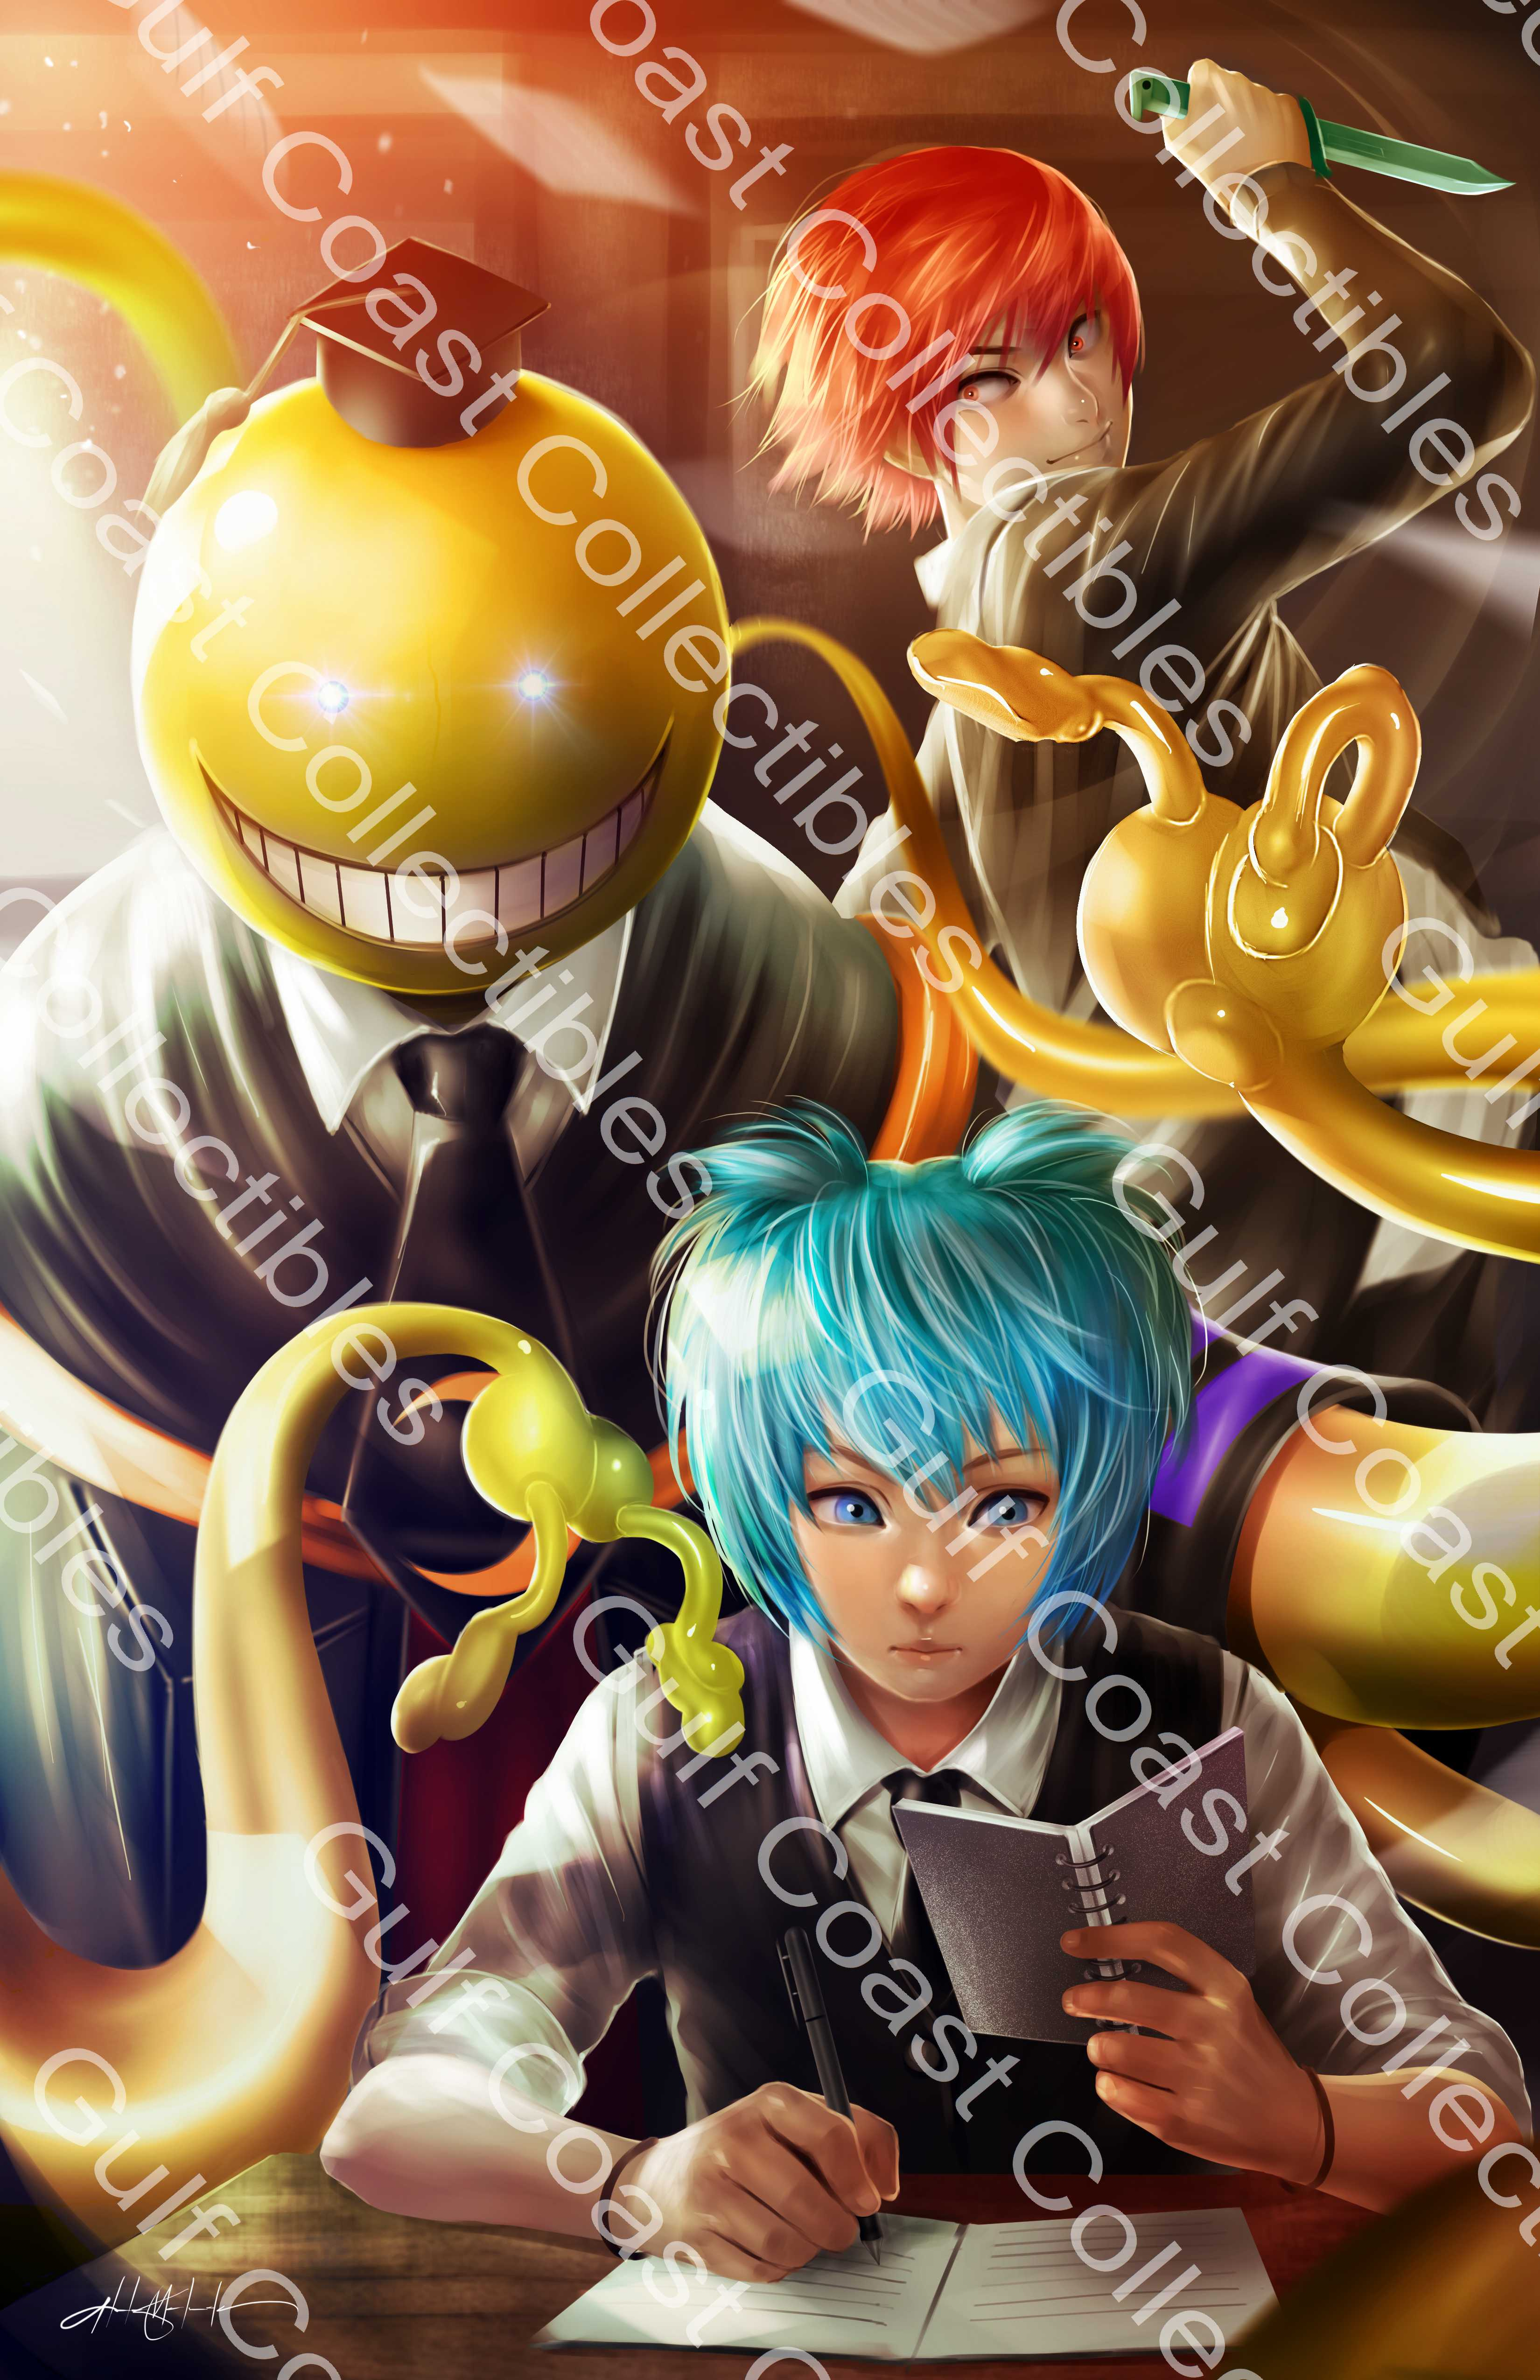 Exclusive Assassination Classroom Korosensei Nagisa Karma Commissioned Art 11 X 17 Print Sold By Gulf Coast Collectibles On Storenvy